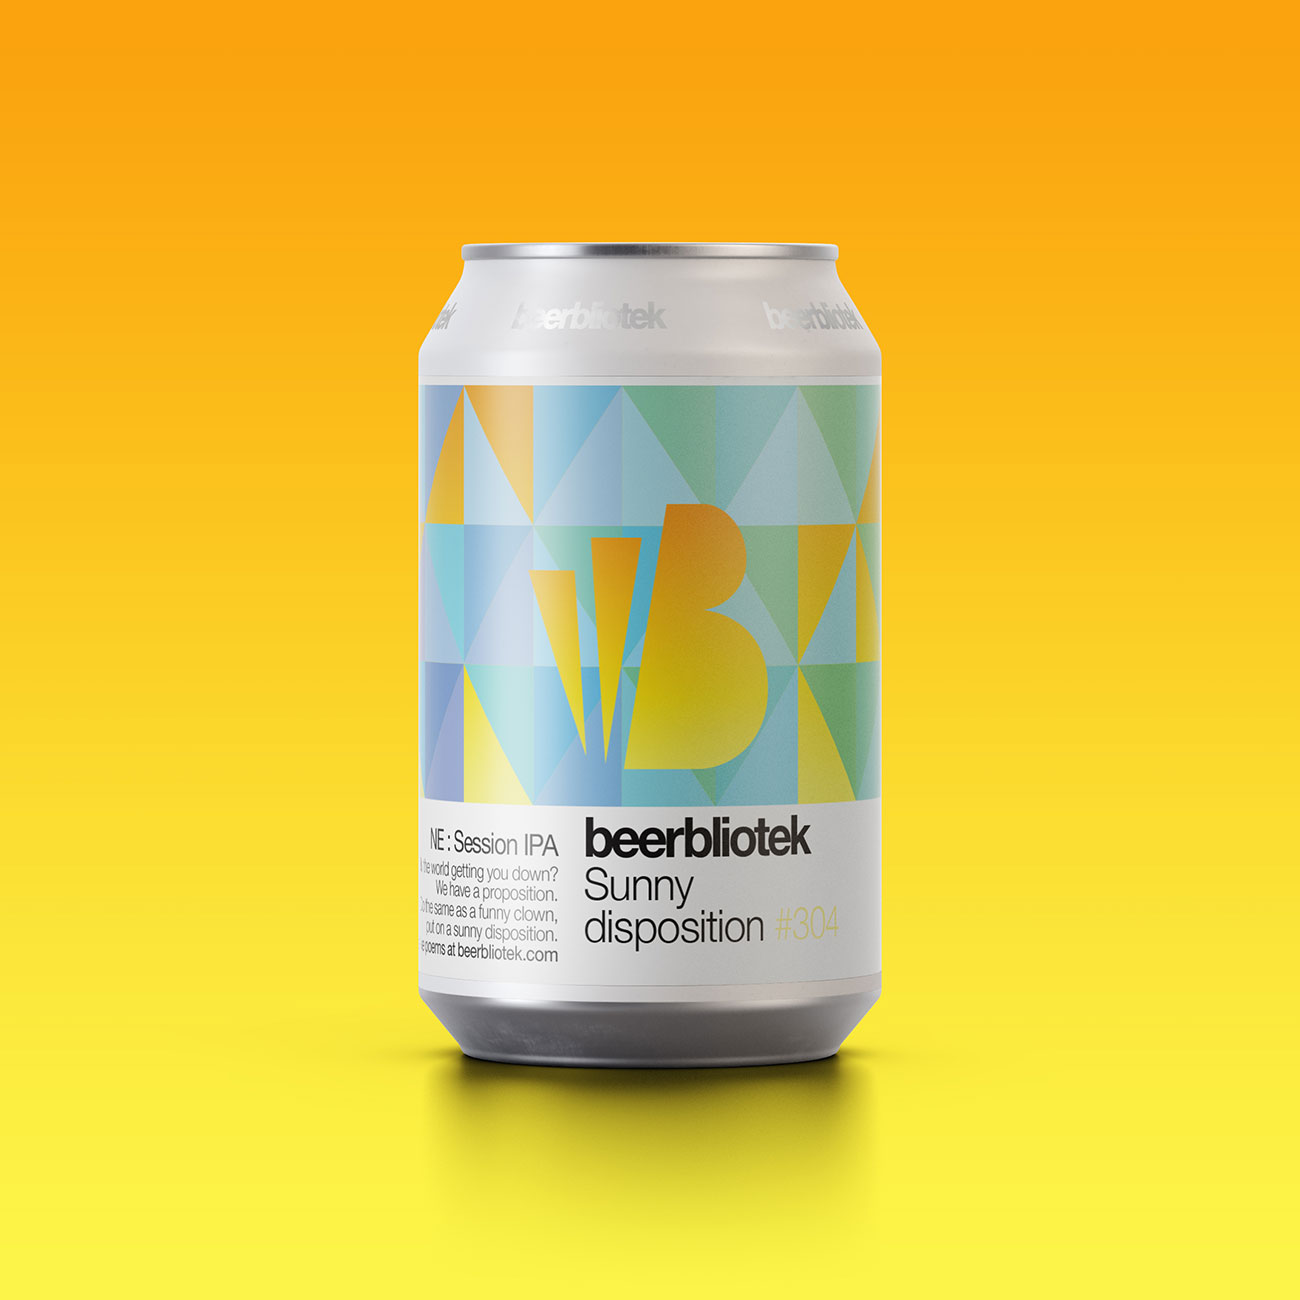 A marketing can packshot of Sunny disposition, a New England Session IPA, brewed in Gothenburg, by Swedish Craft Brewery Beerbliotek.